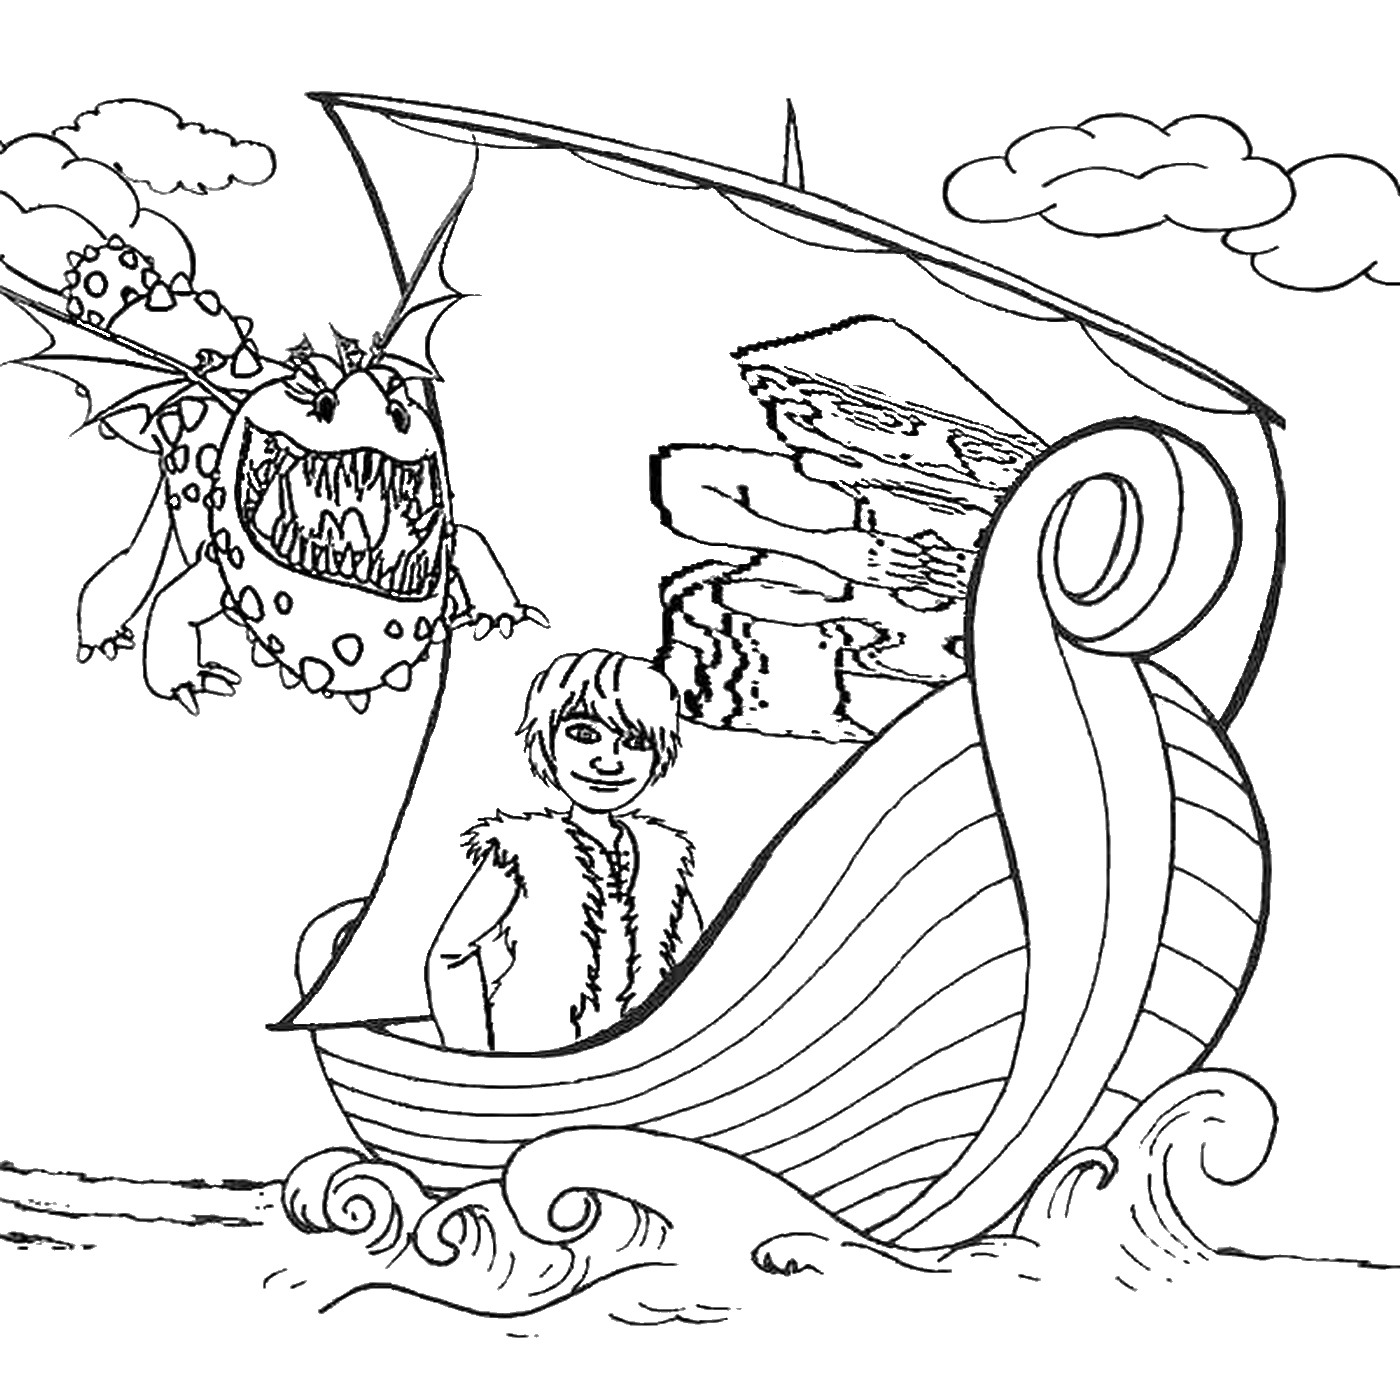 1400x1400 How To Train Your Dragon Coloring Pages